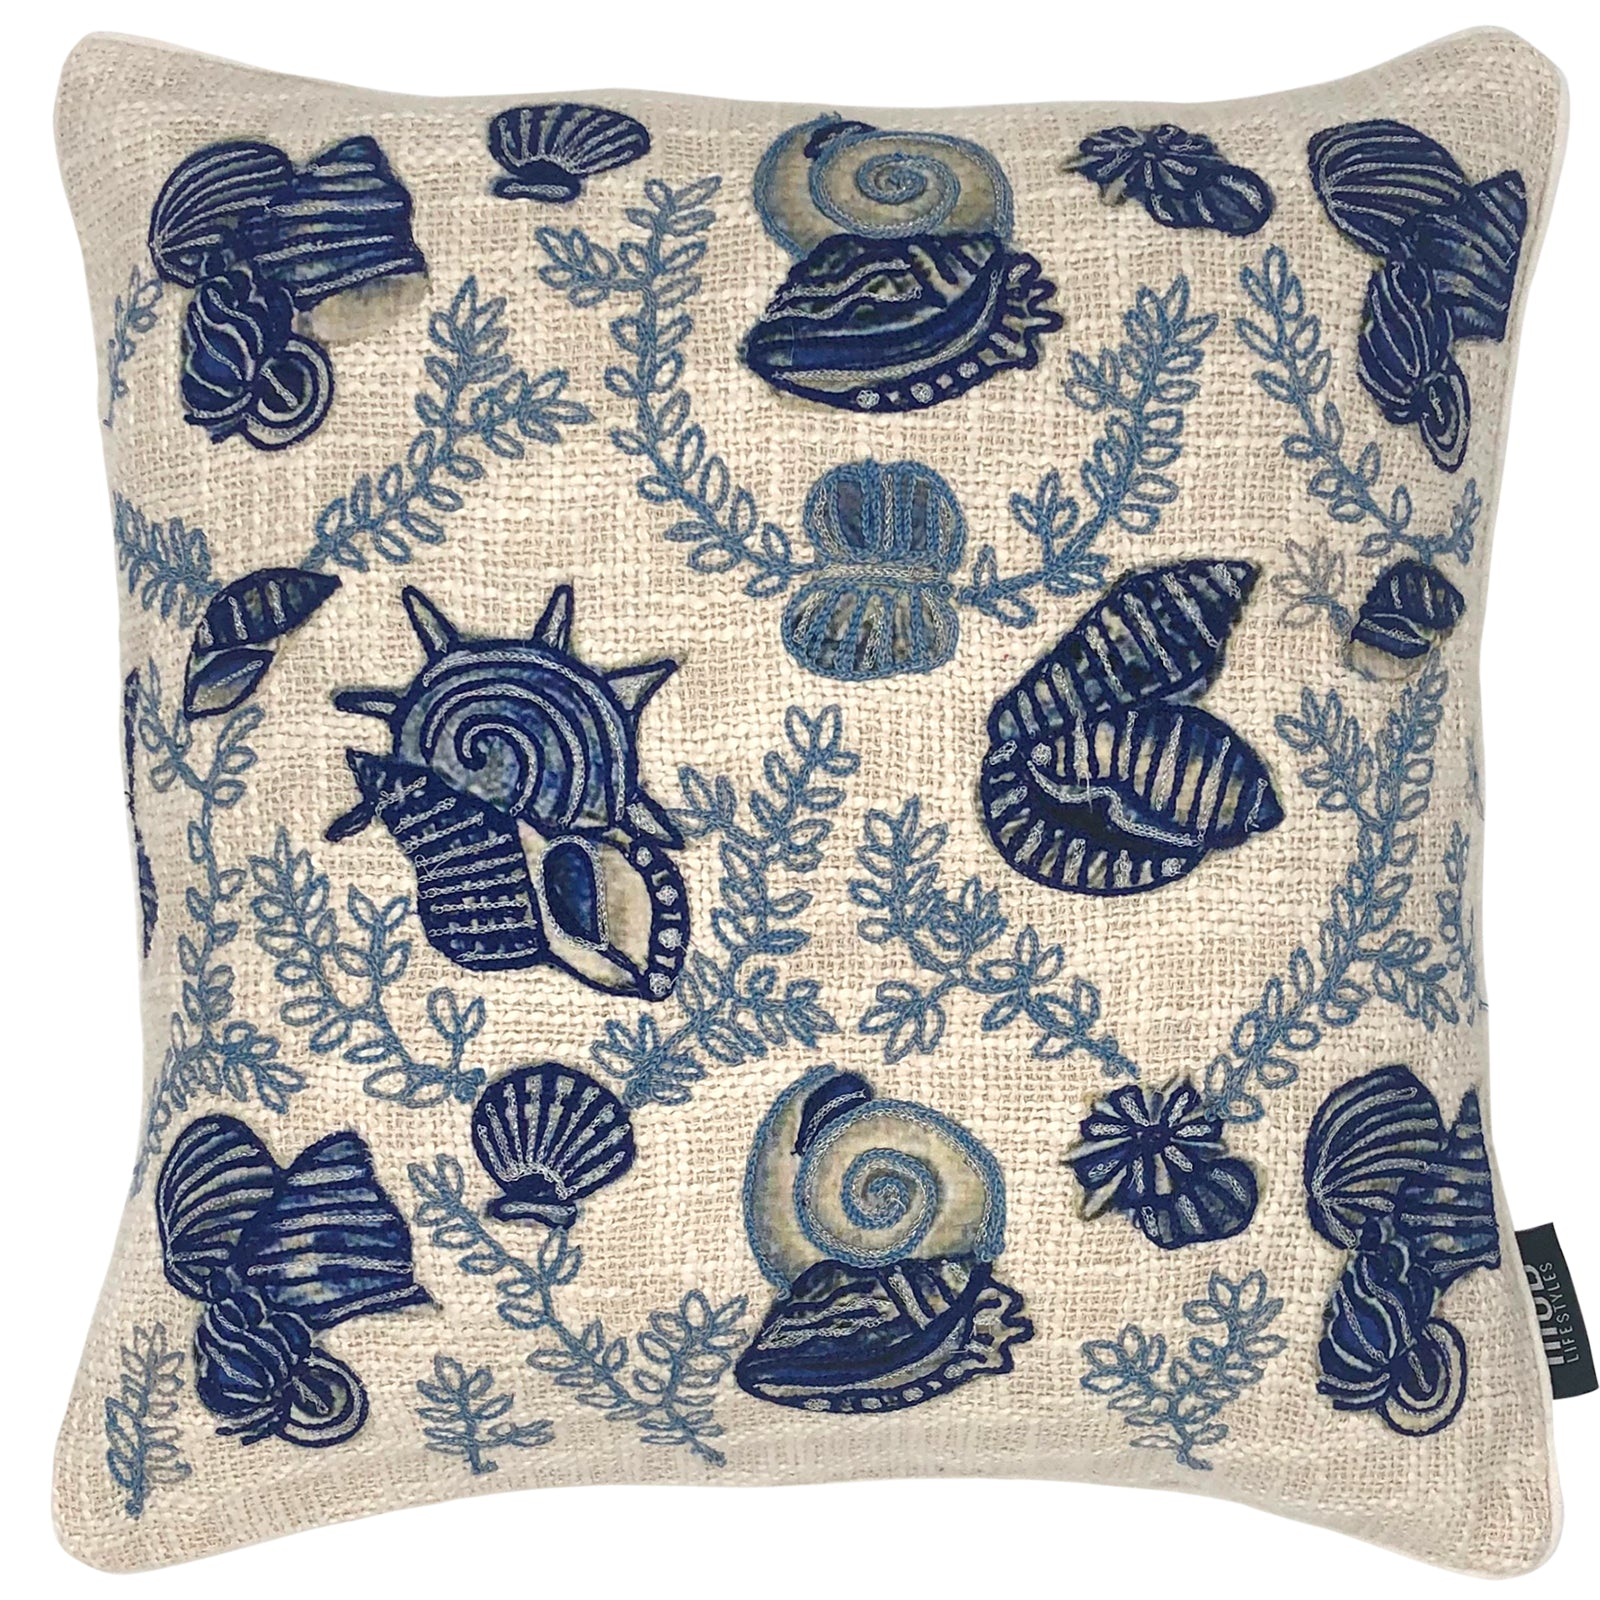 "Blue Natural Seashell Embroidery Decorative Pillow, 20"" X 20"""